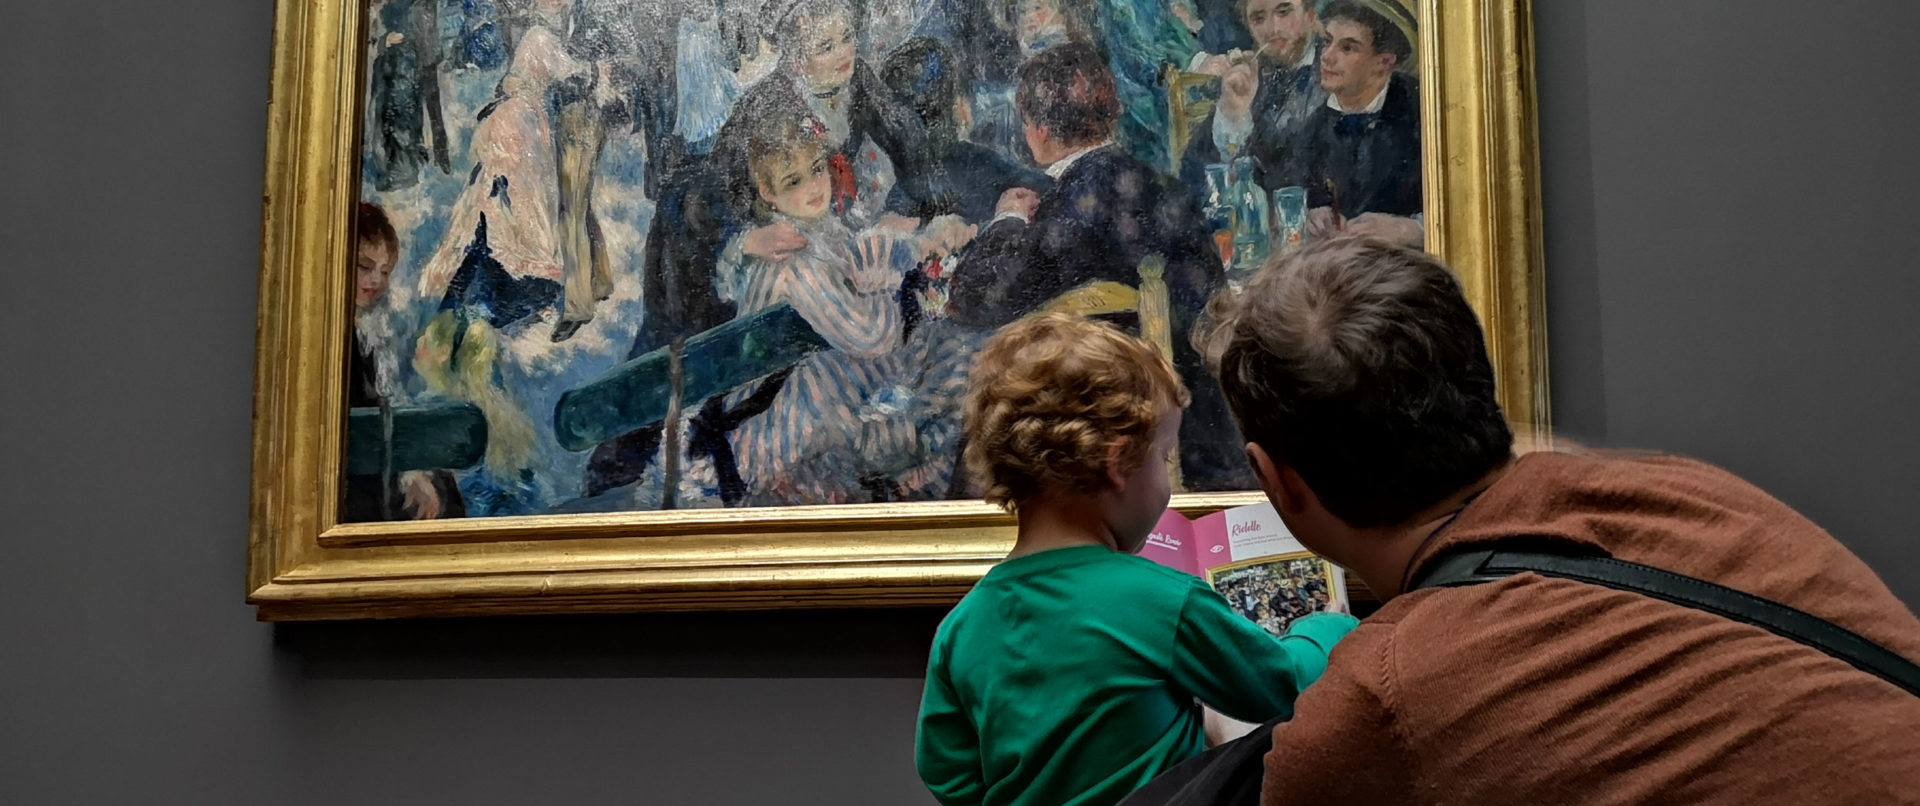 orsay-museum-family-guided-tour